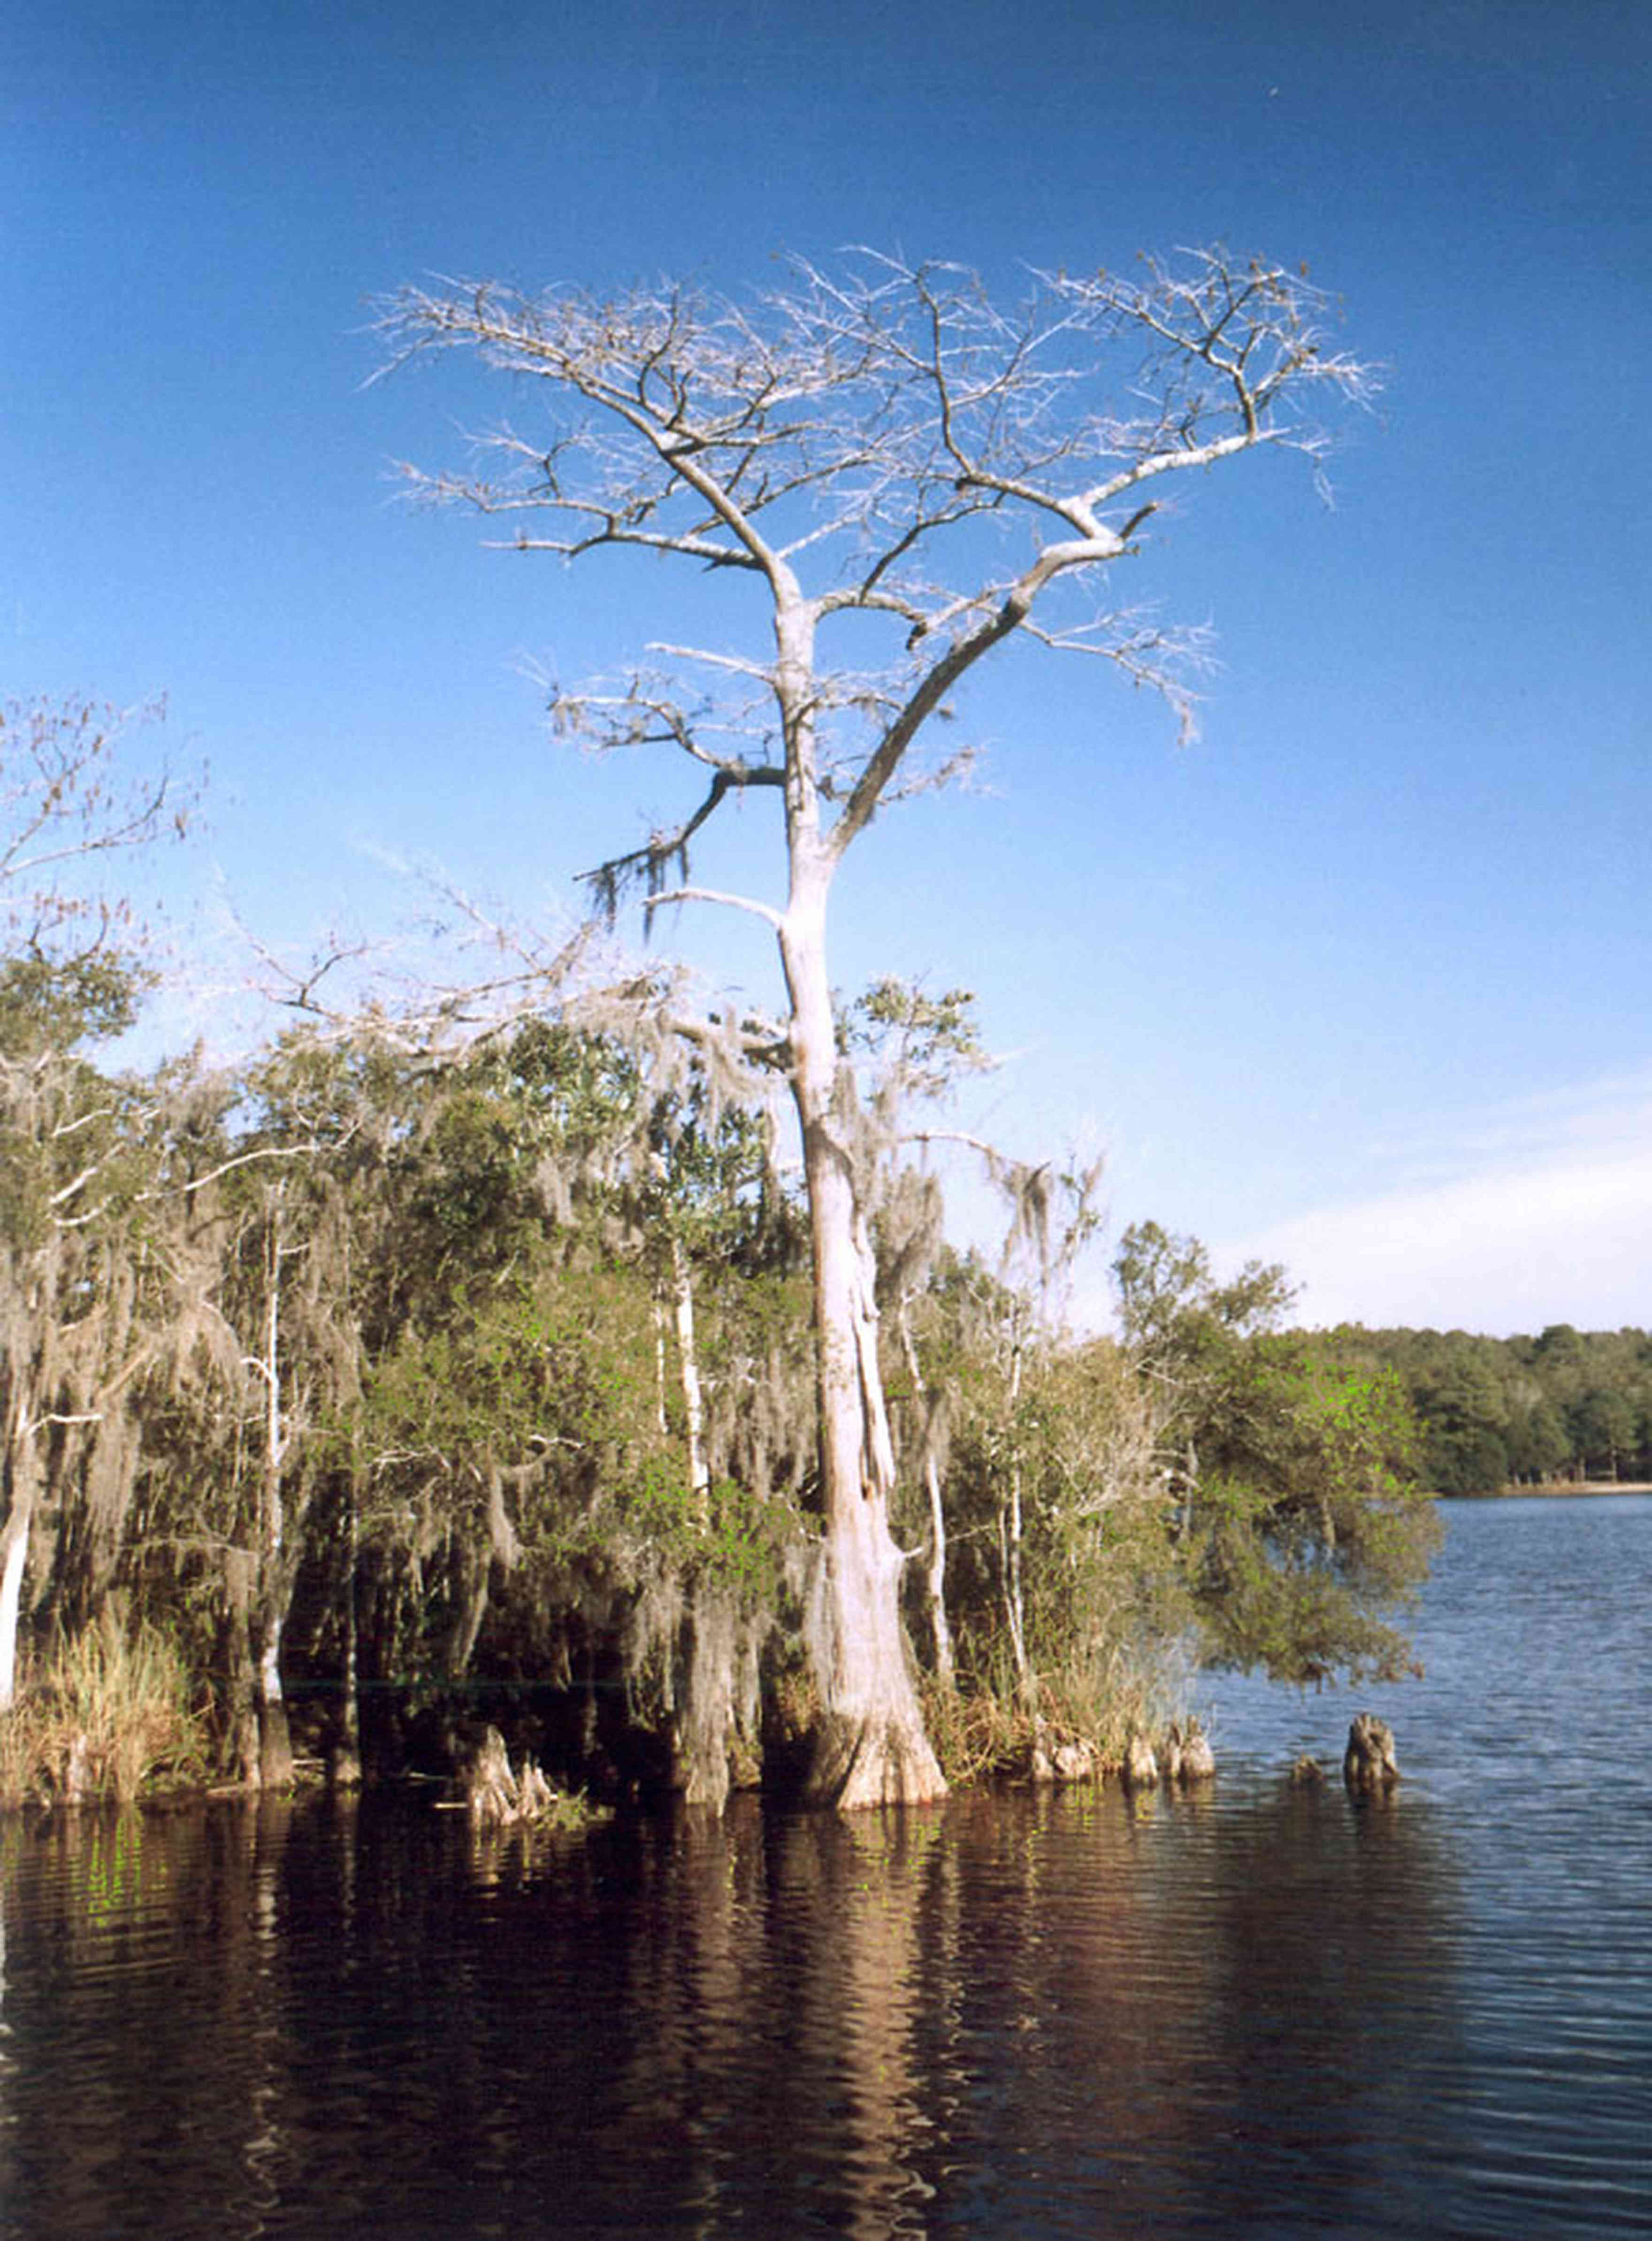 Blackwater-River-State-Park:-Blackwater-River_03.jpg:  gulf coast, cypress tree, swamp, forest, park